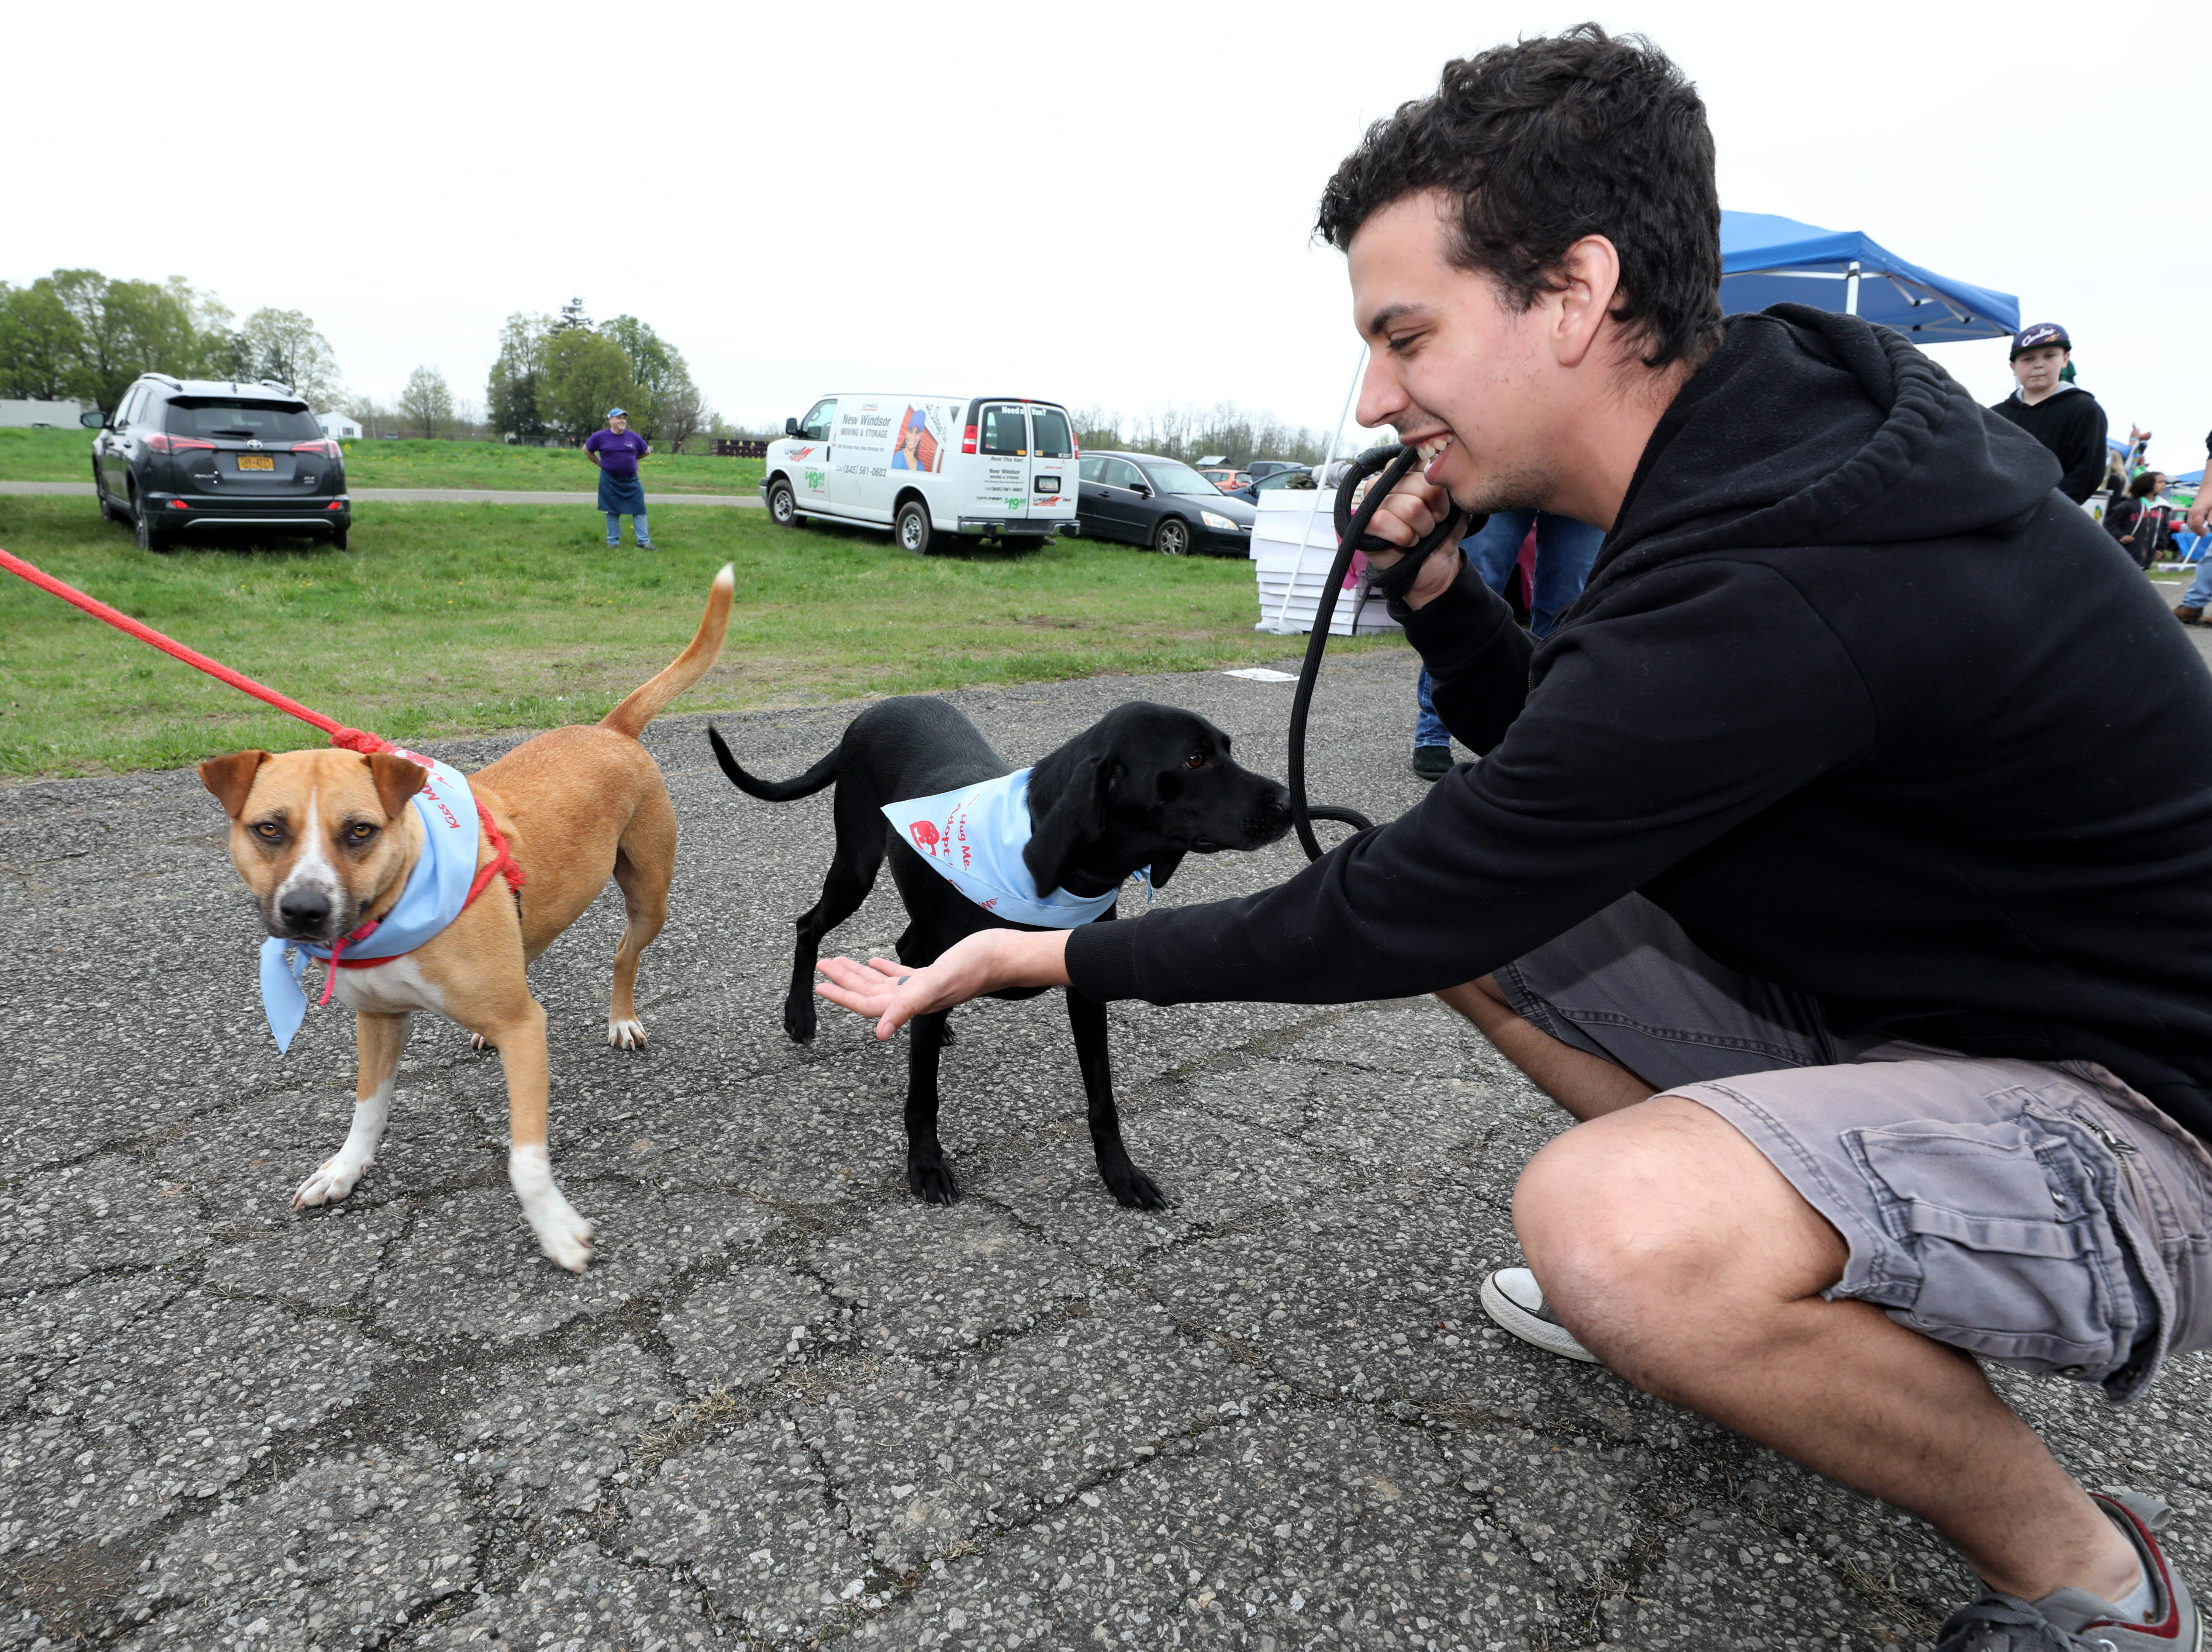 Animals with the Hudson Valley Animal Rescue and Sanctuary booth get some exercise during the K104.7 Cupcake Festival at the Stormville Airport, May 4, 2019.